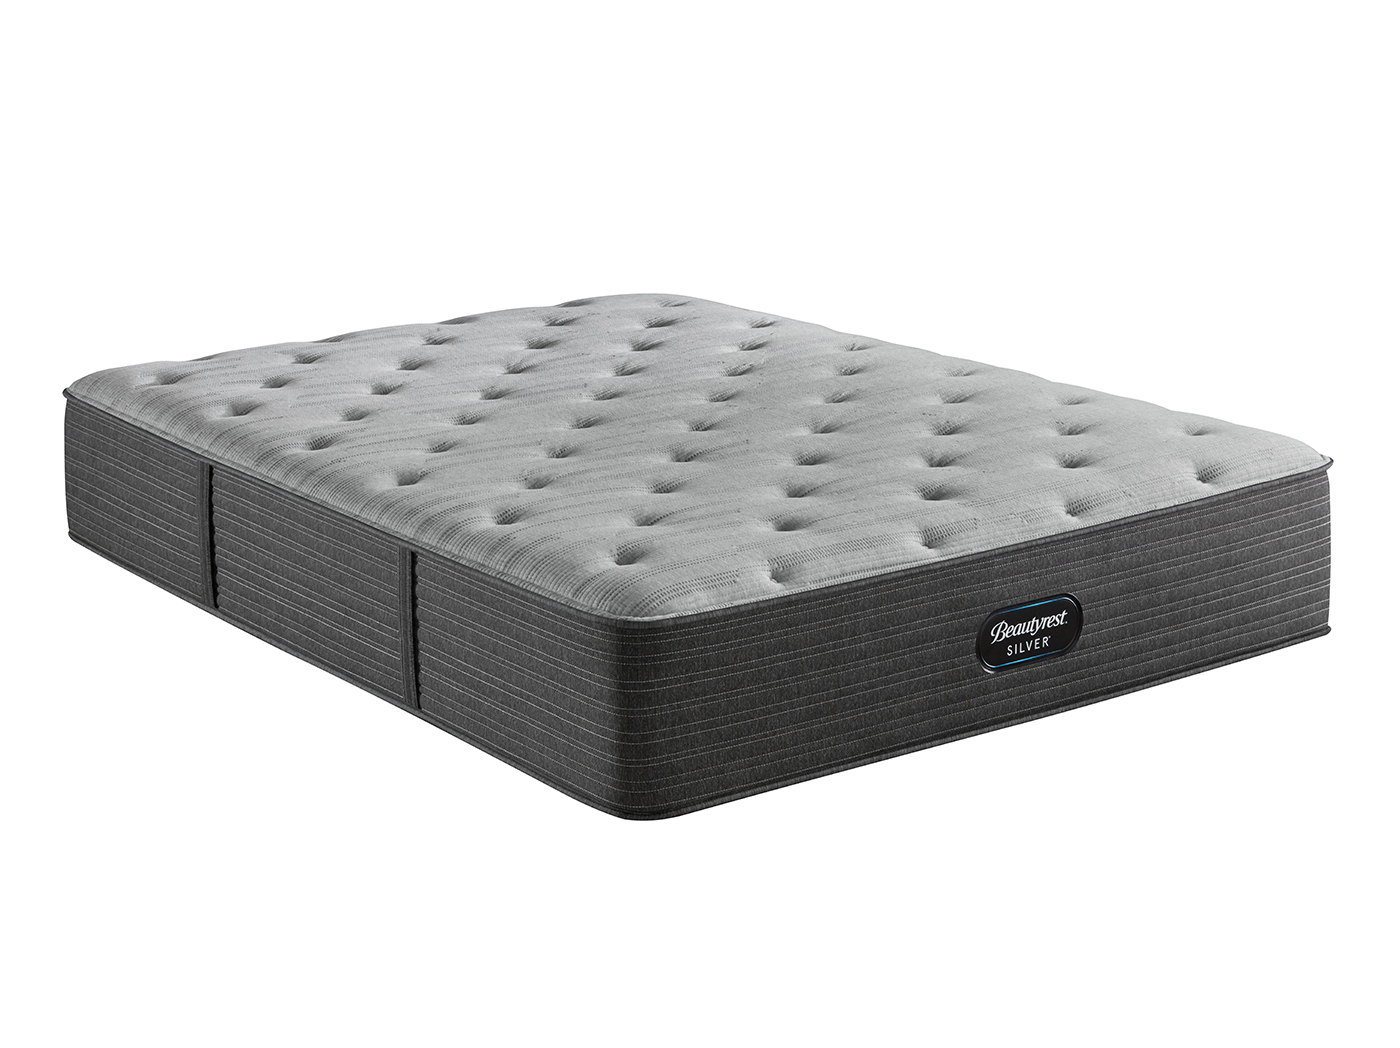 Beautyrest Silver BRS900C-RS Medium Twin XL Mattress